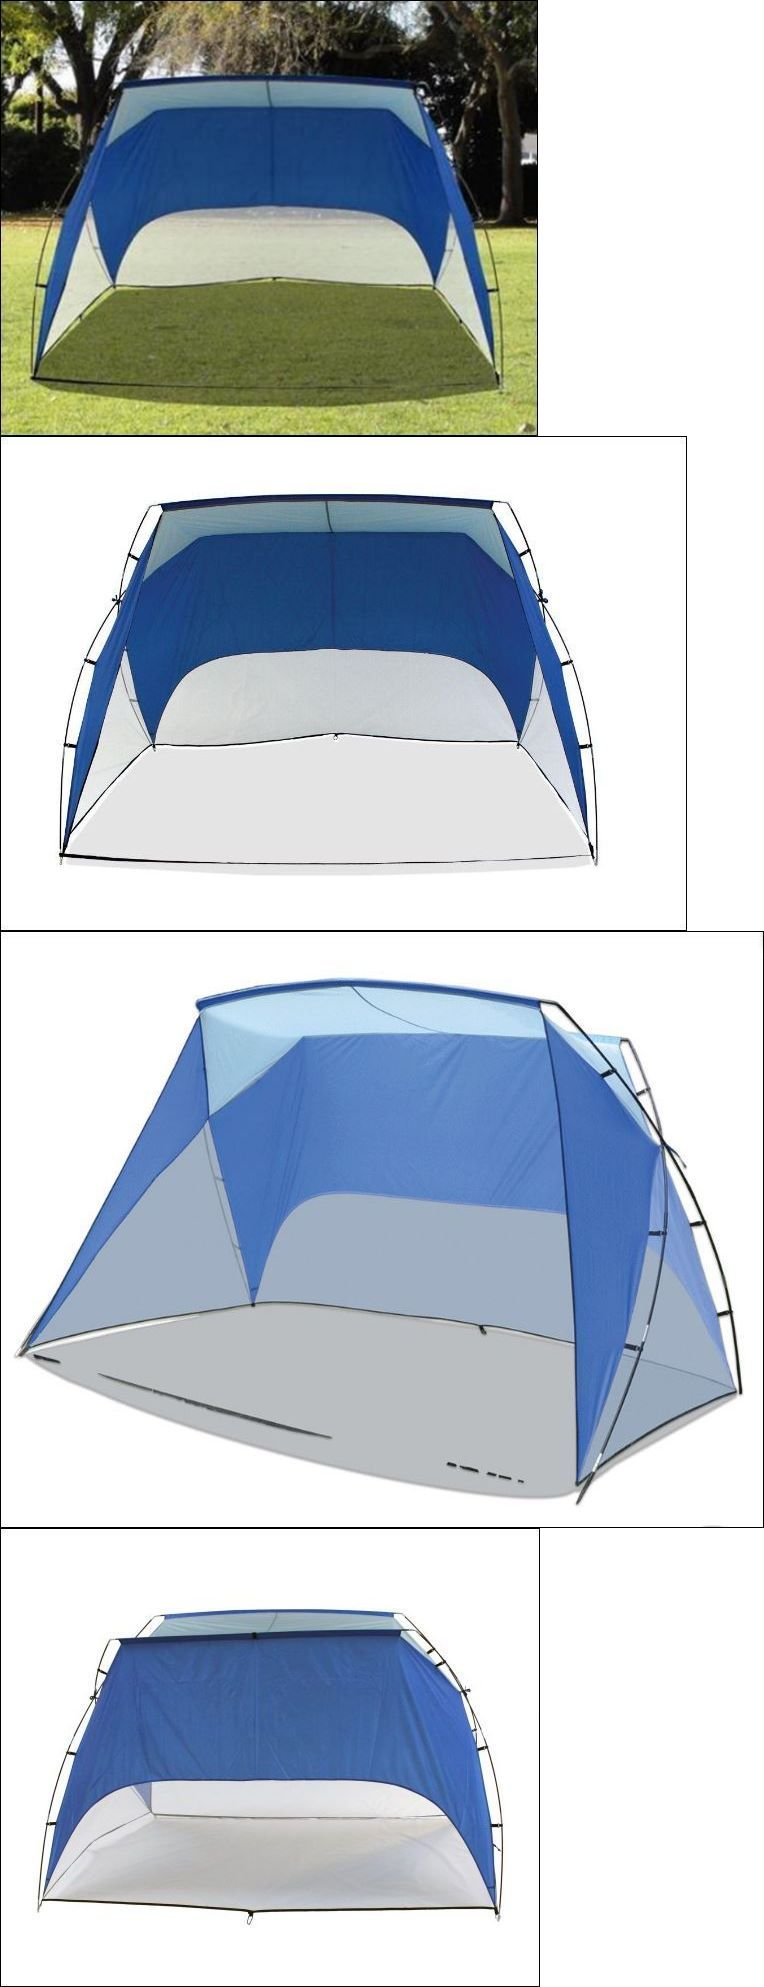 Canopies and Shelters 179011 Sun Shade Tent Beach Cabana Sports Umbrella Personal Sideline Portable Shelter  sc 1 st  Pinterest & Canopies and Shelters 179011: Sun Shade Tent Beach Cabana Sports ...